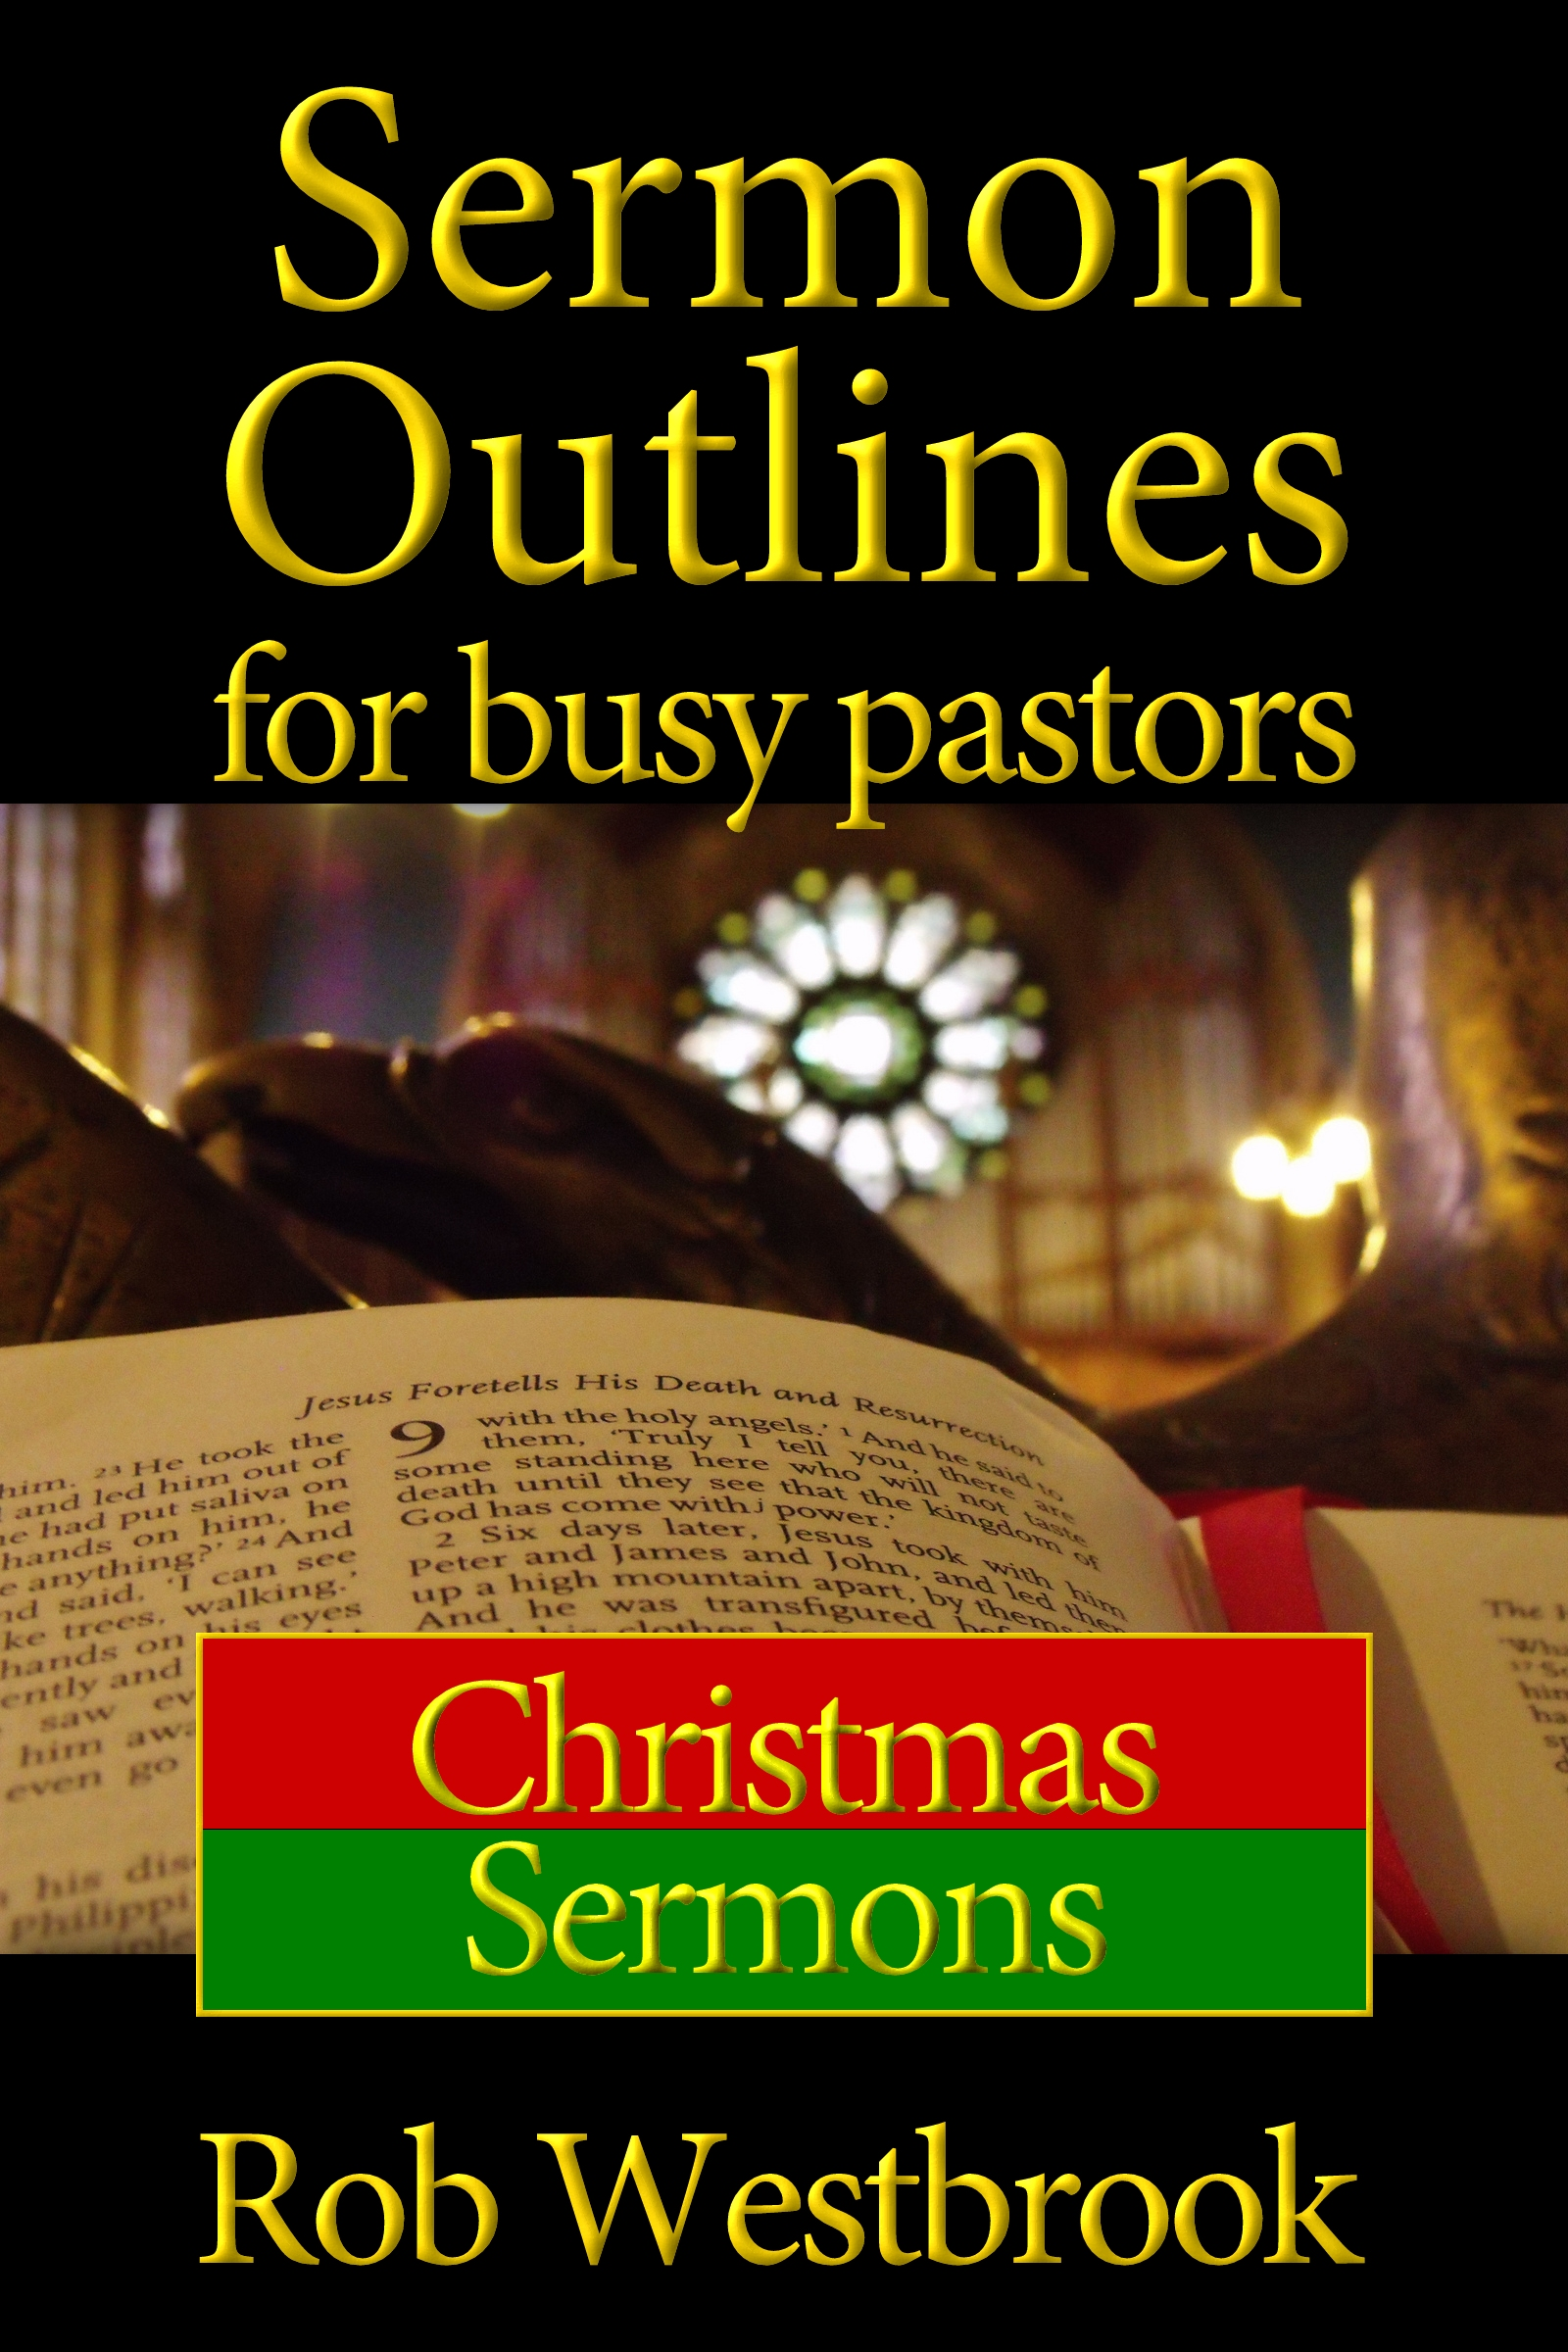 Christmas Sermon Outlines.Sermon Outlines For Busy Pastors Christmas Sermons An Ebook By Rob Westbrook